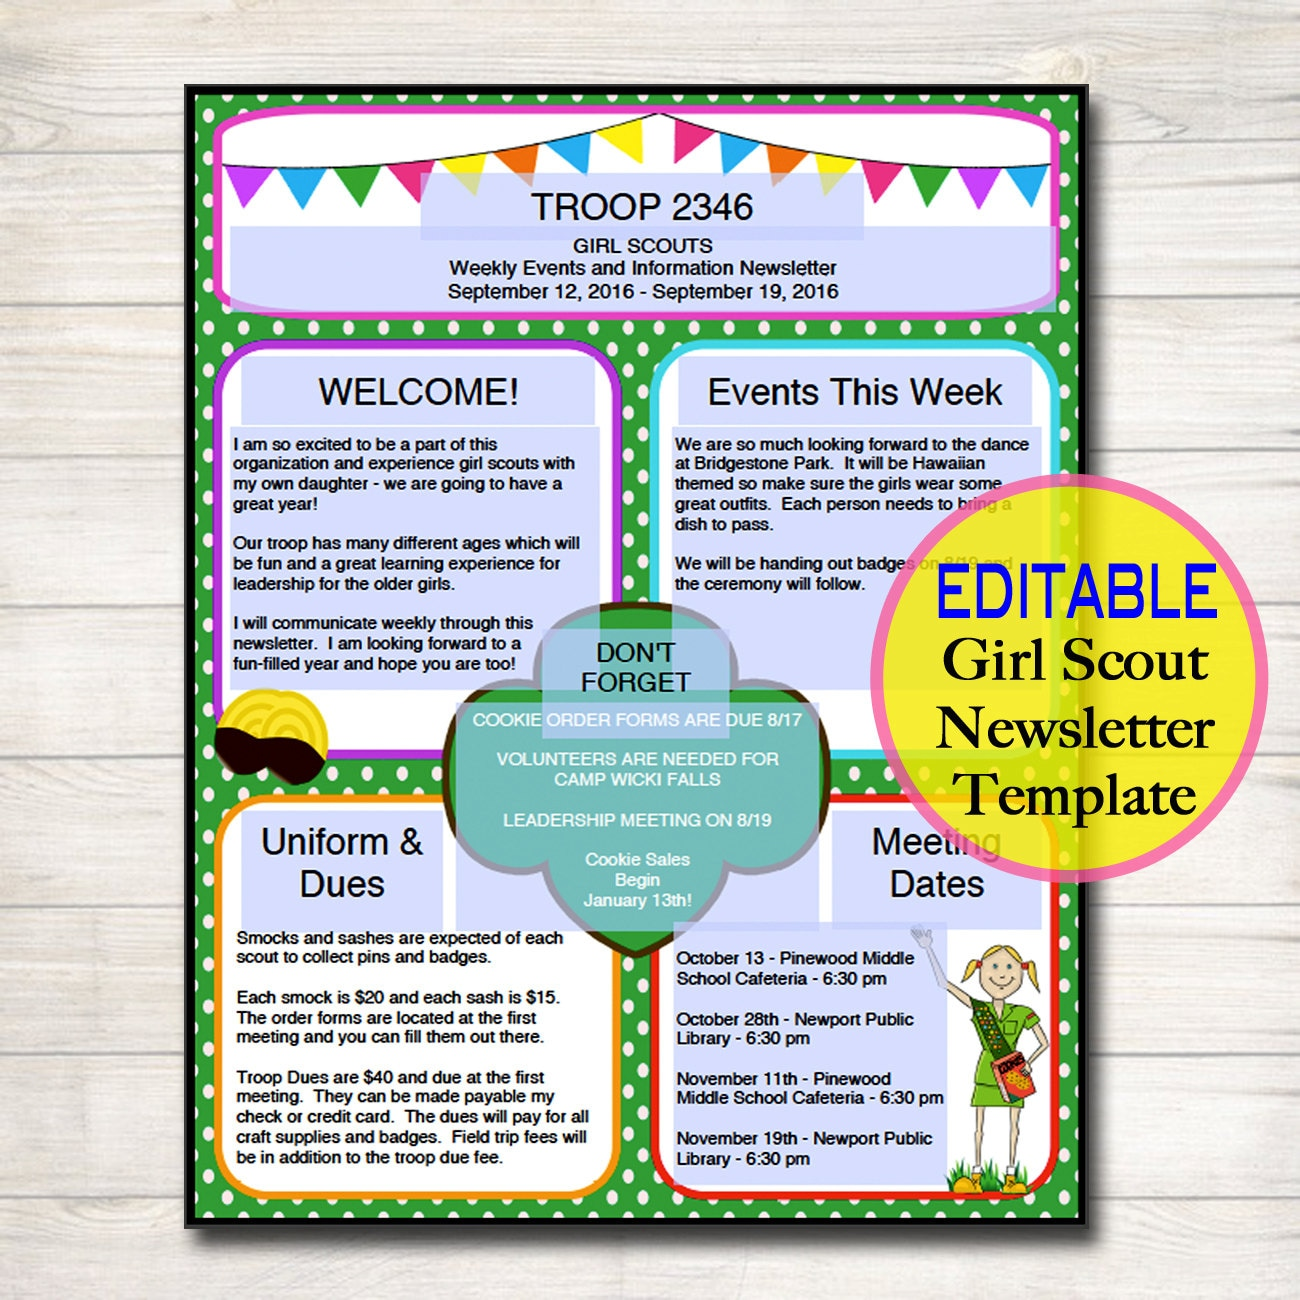 Girl Scouts Newsletter Template Instant Editable Troop